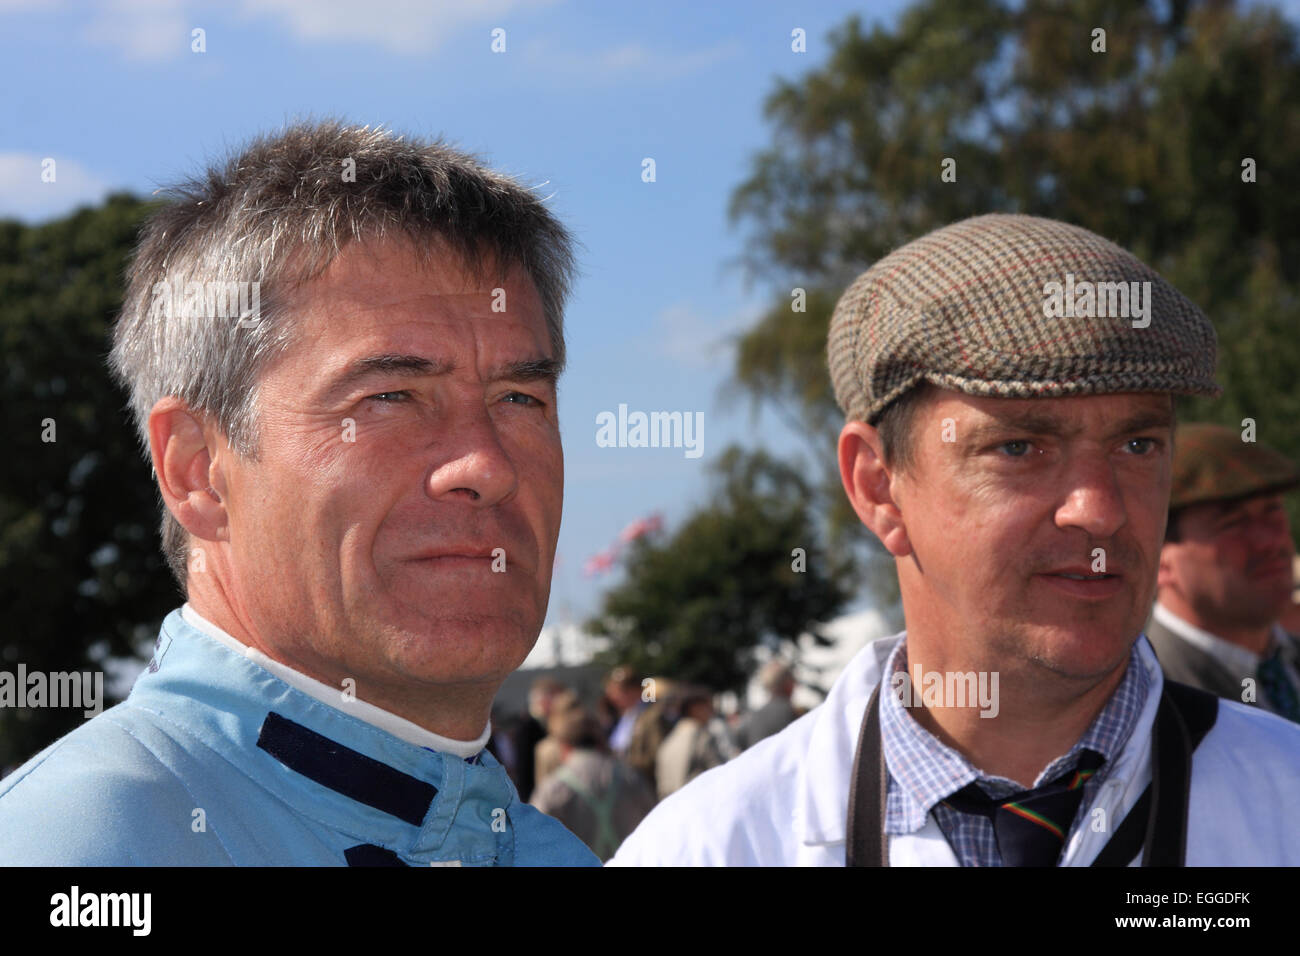 Tiff Needell (left), TV presenter and former racing driver / Goodwood Revival / Goodwood / UK - Stock Image